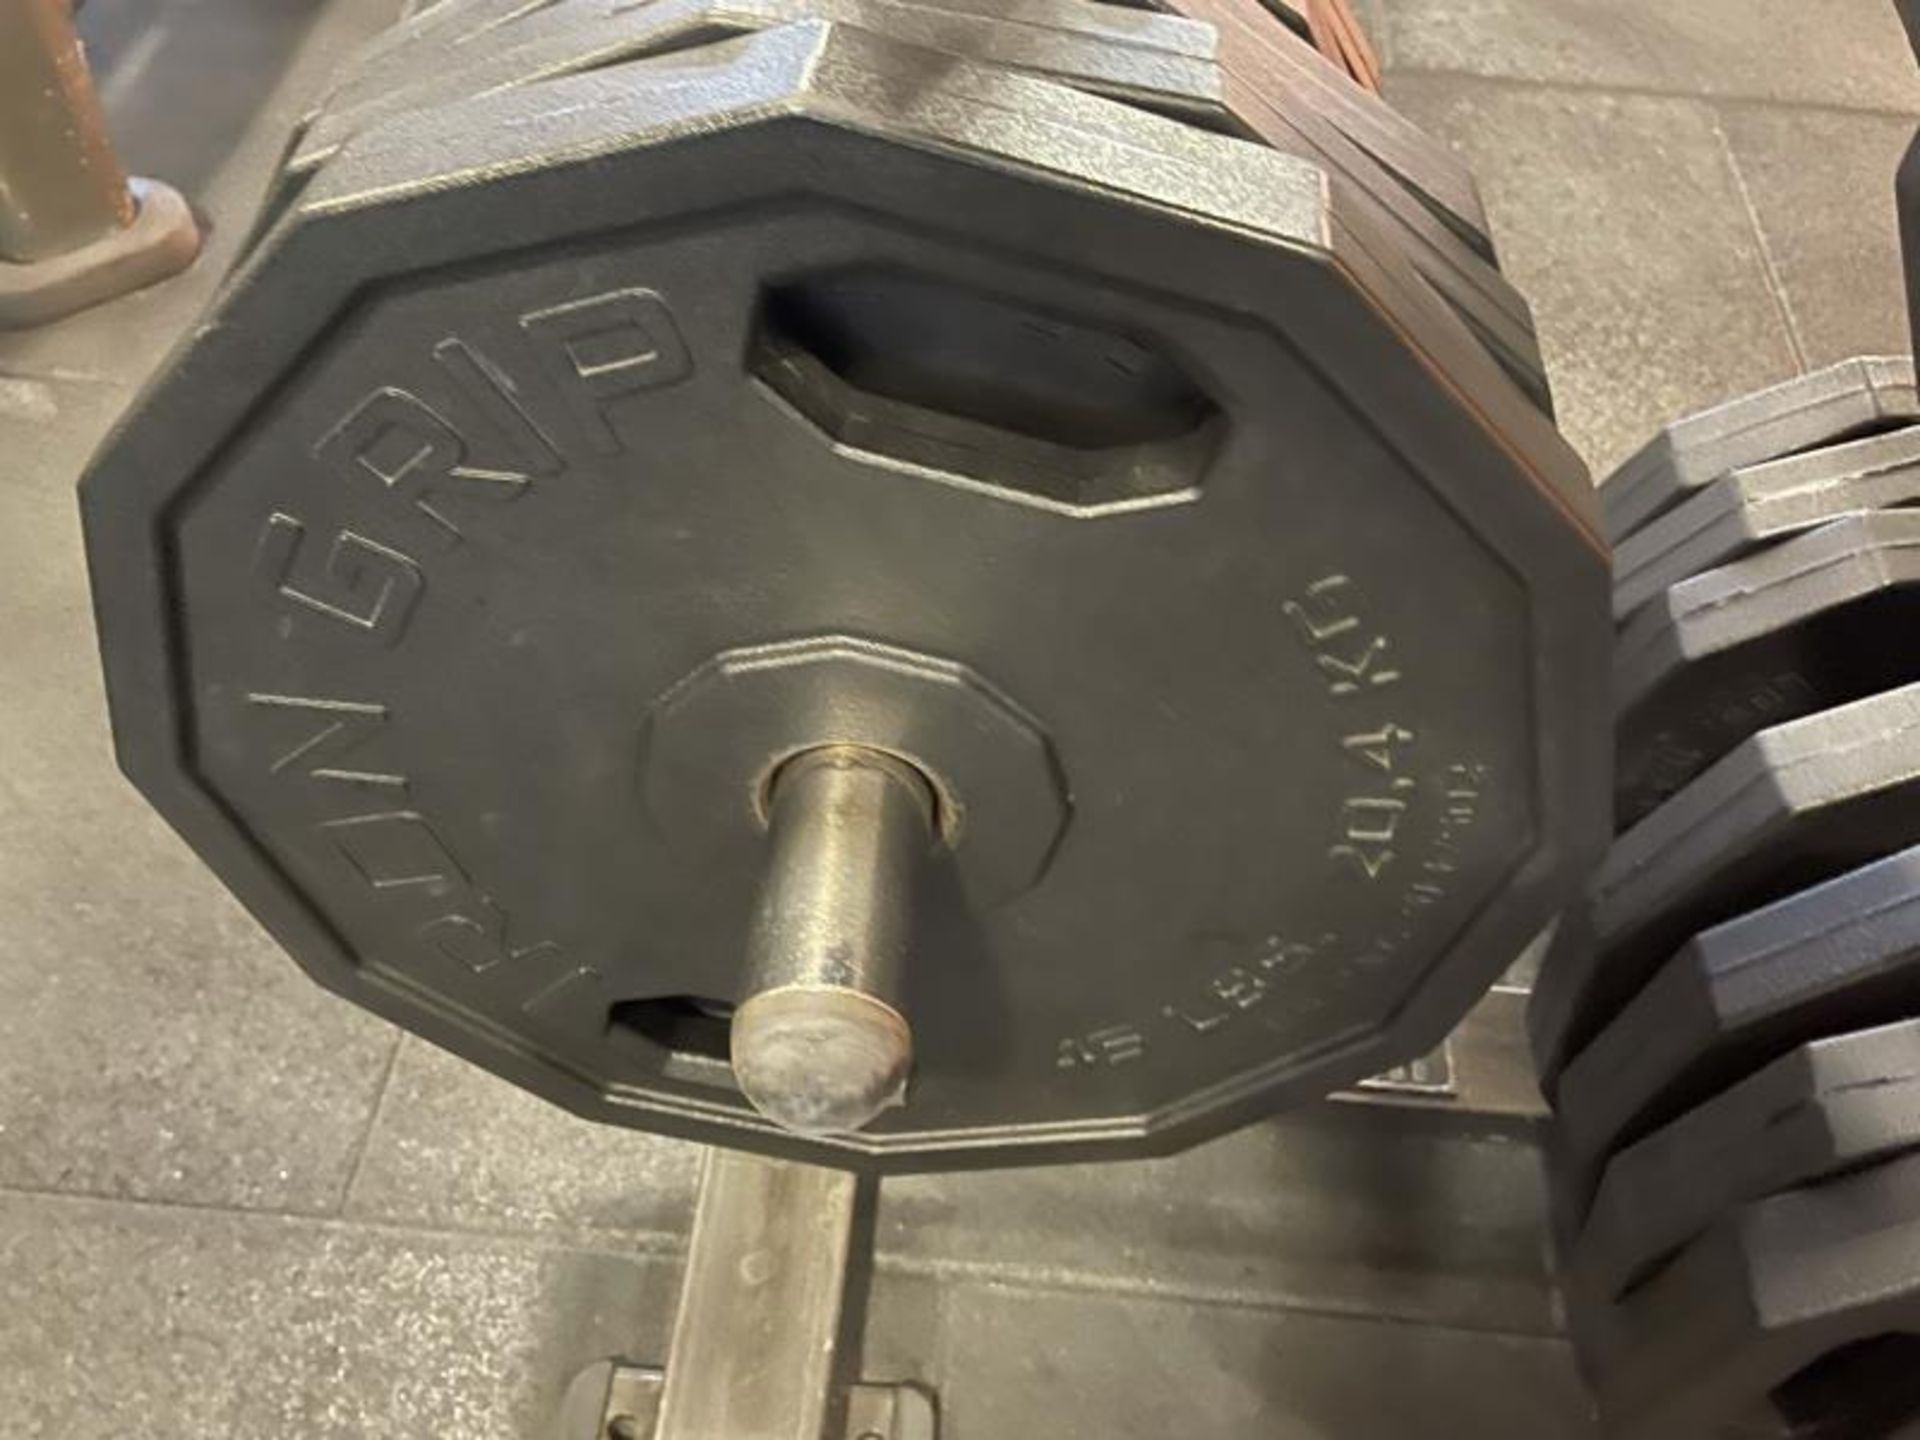 Hammer Strength Rack with 26 Iron Grip Weighted Plates - Image 3 of 5